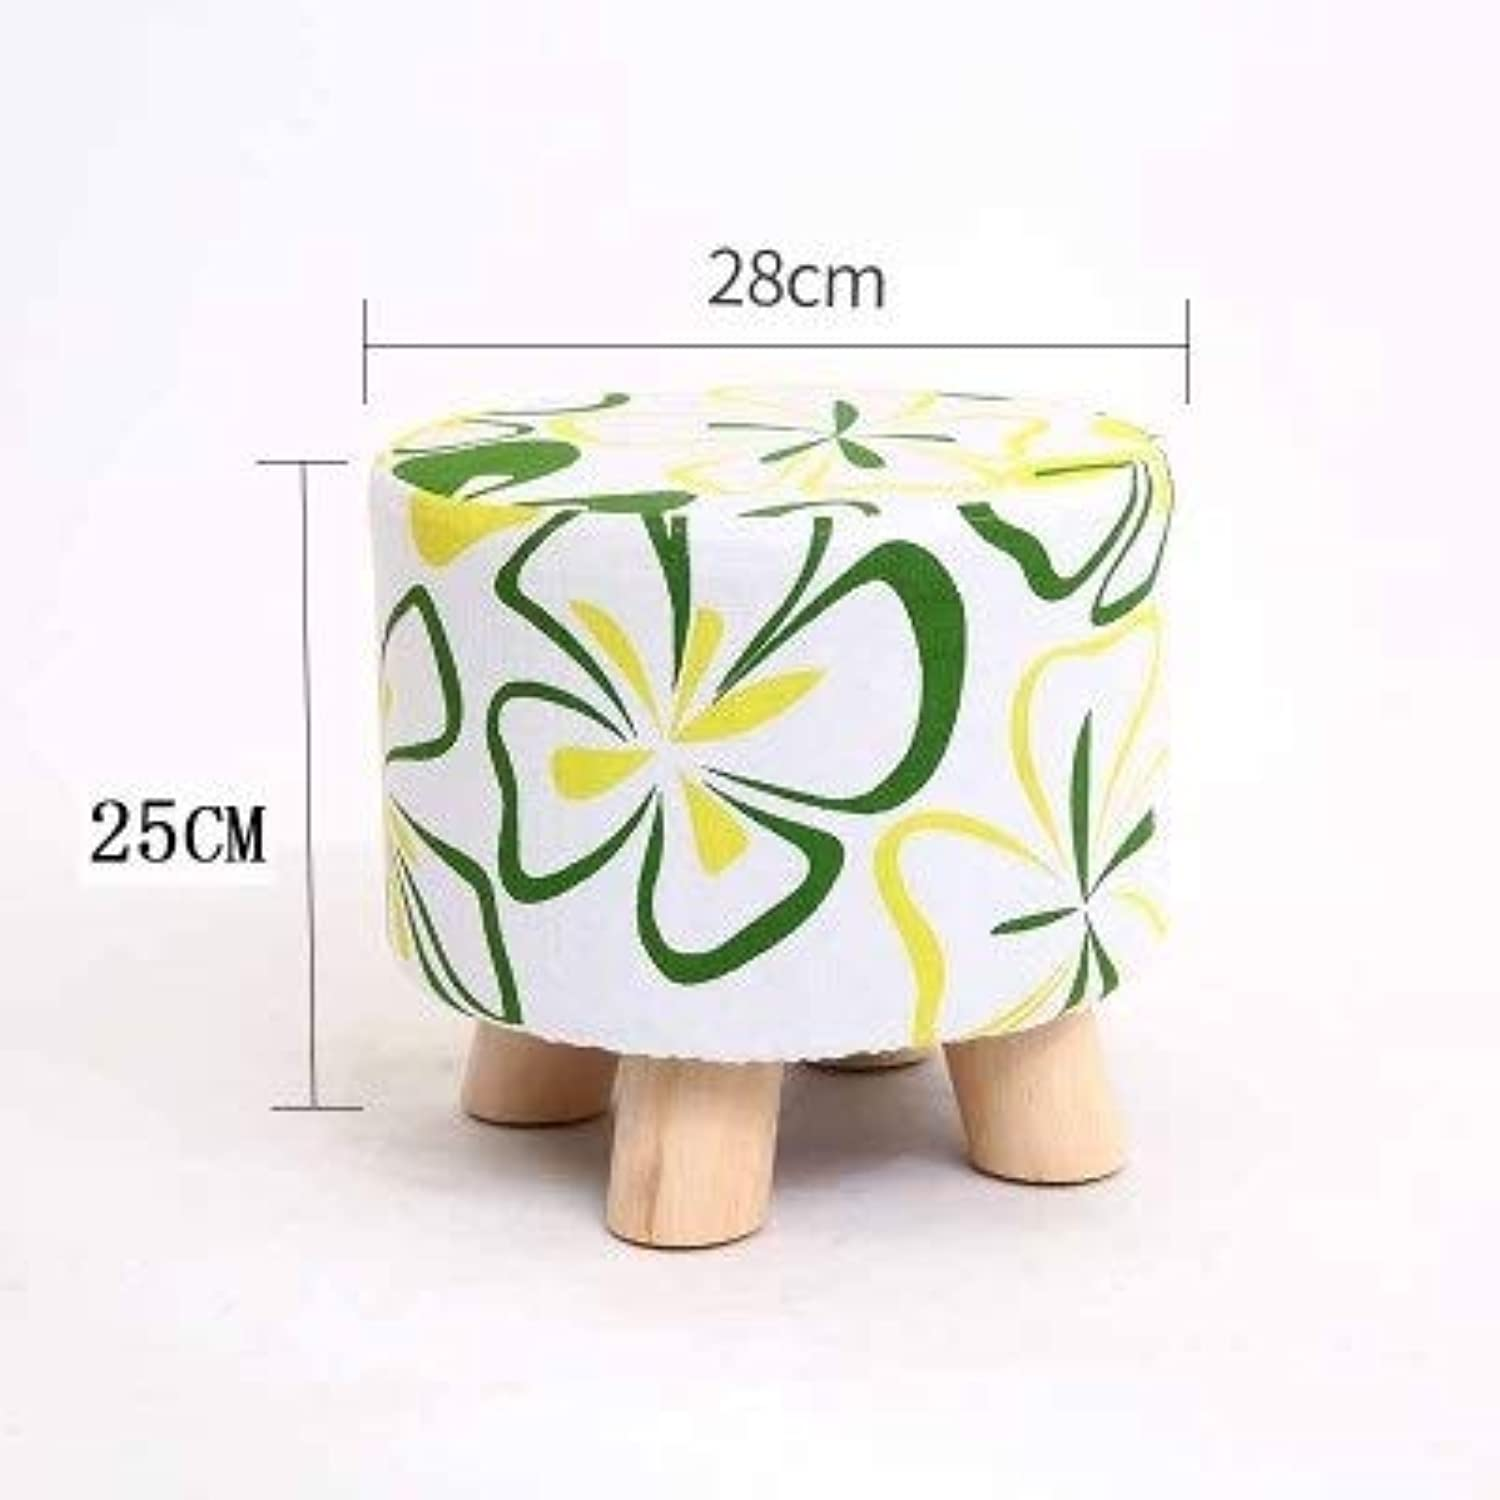 RHHWJJXB Small Stool Fabric Stool Home Mini shoes Bench Solid Wood Stool Small Chair Sofa Stool Small Wooden Bench (color   E)